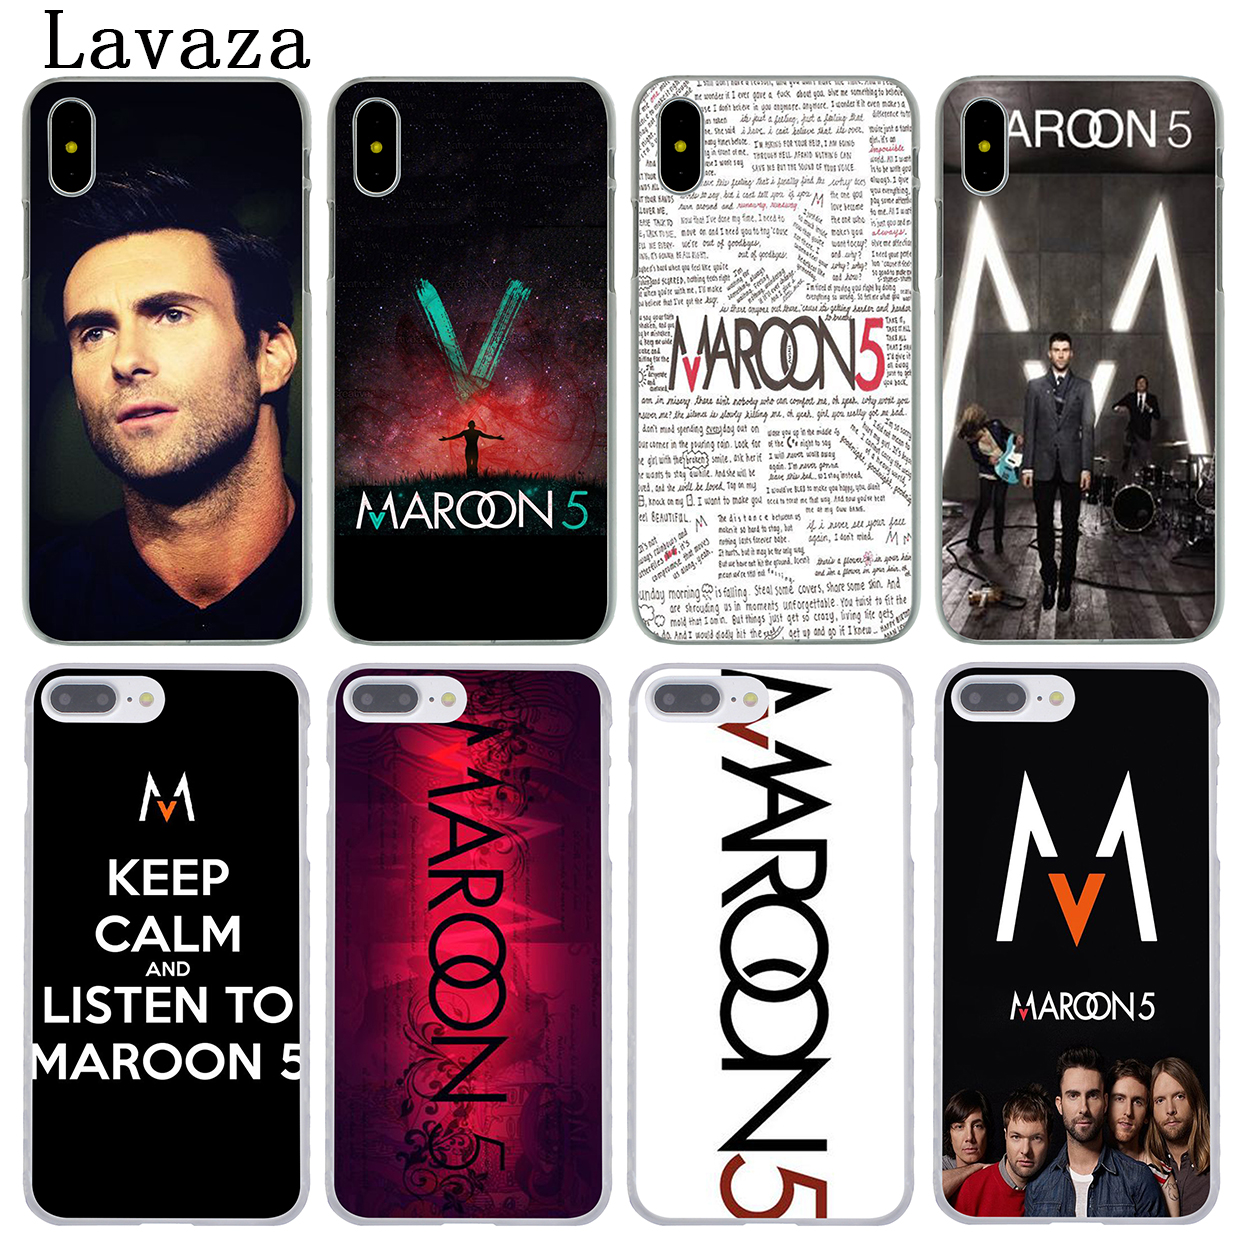 Lavaza maroon 5 Hard Phone Coque Shell Case for Apple iPhone X 10 8 7 6 6S Plus 5 5S SE 5C 4 4S Cover